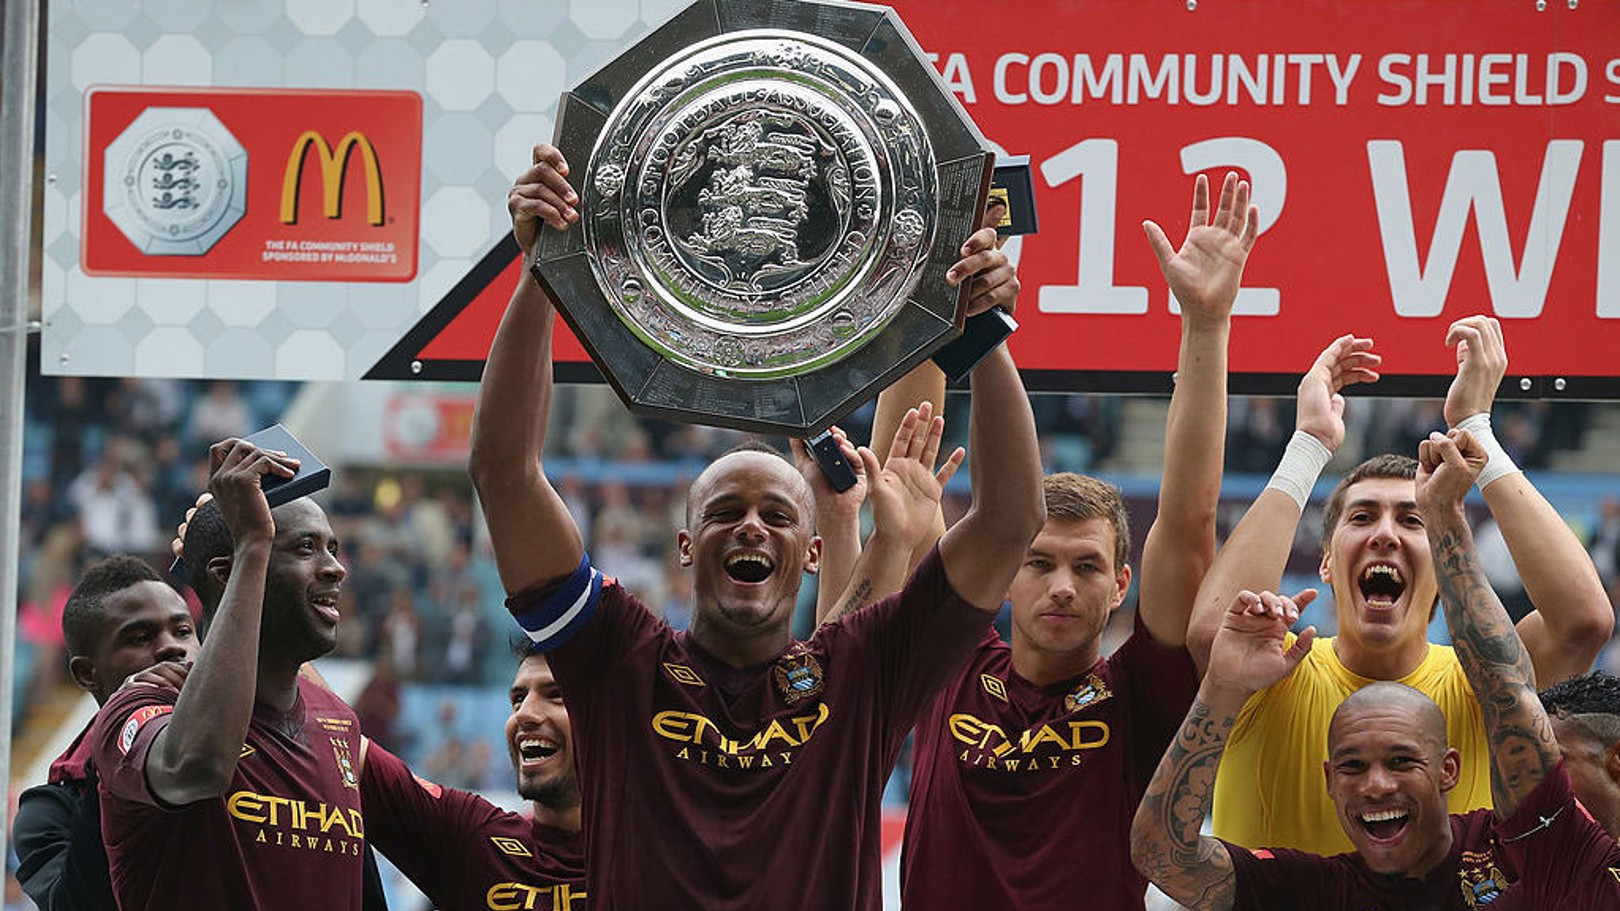 ALL SMILES: Vincent Kompany lifts the Community Shield as City celebrate after our 3-2 victory over Chelsea in 2012